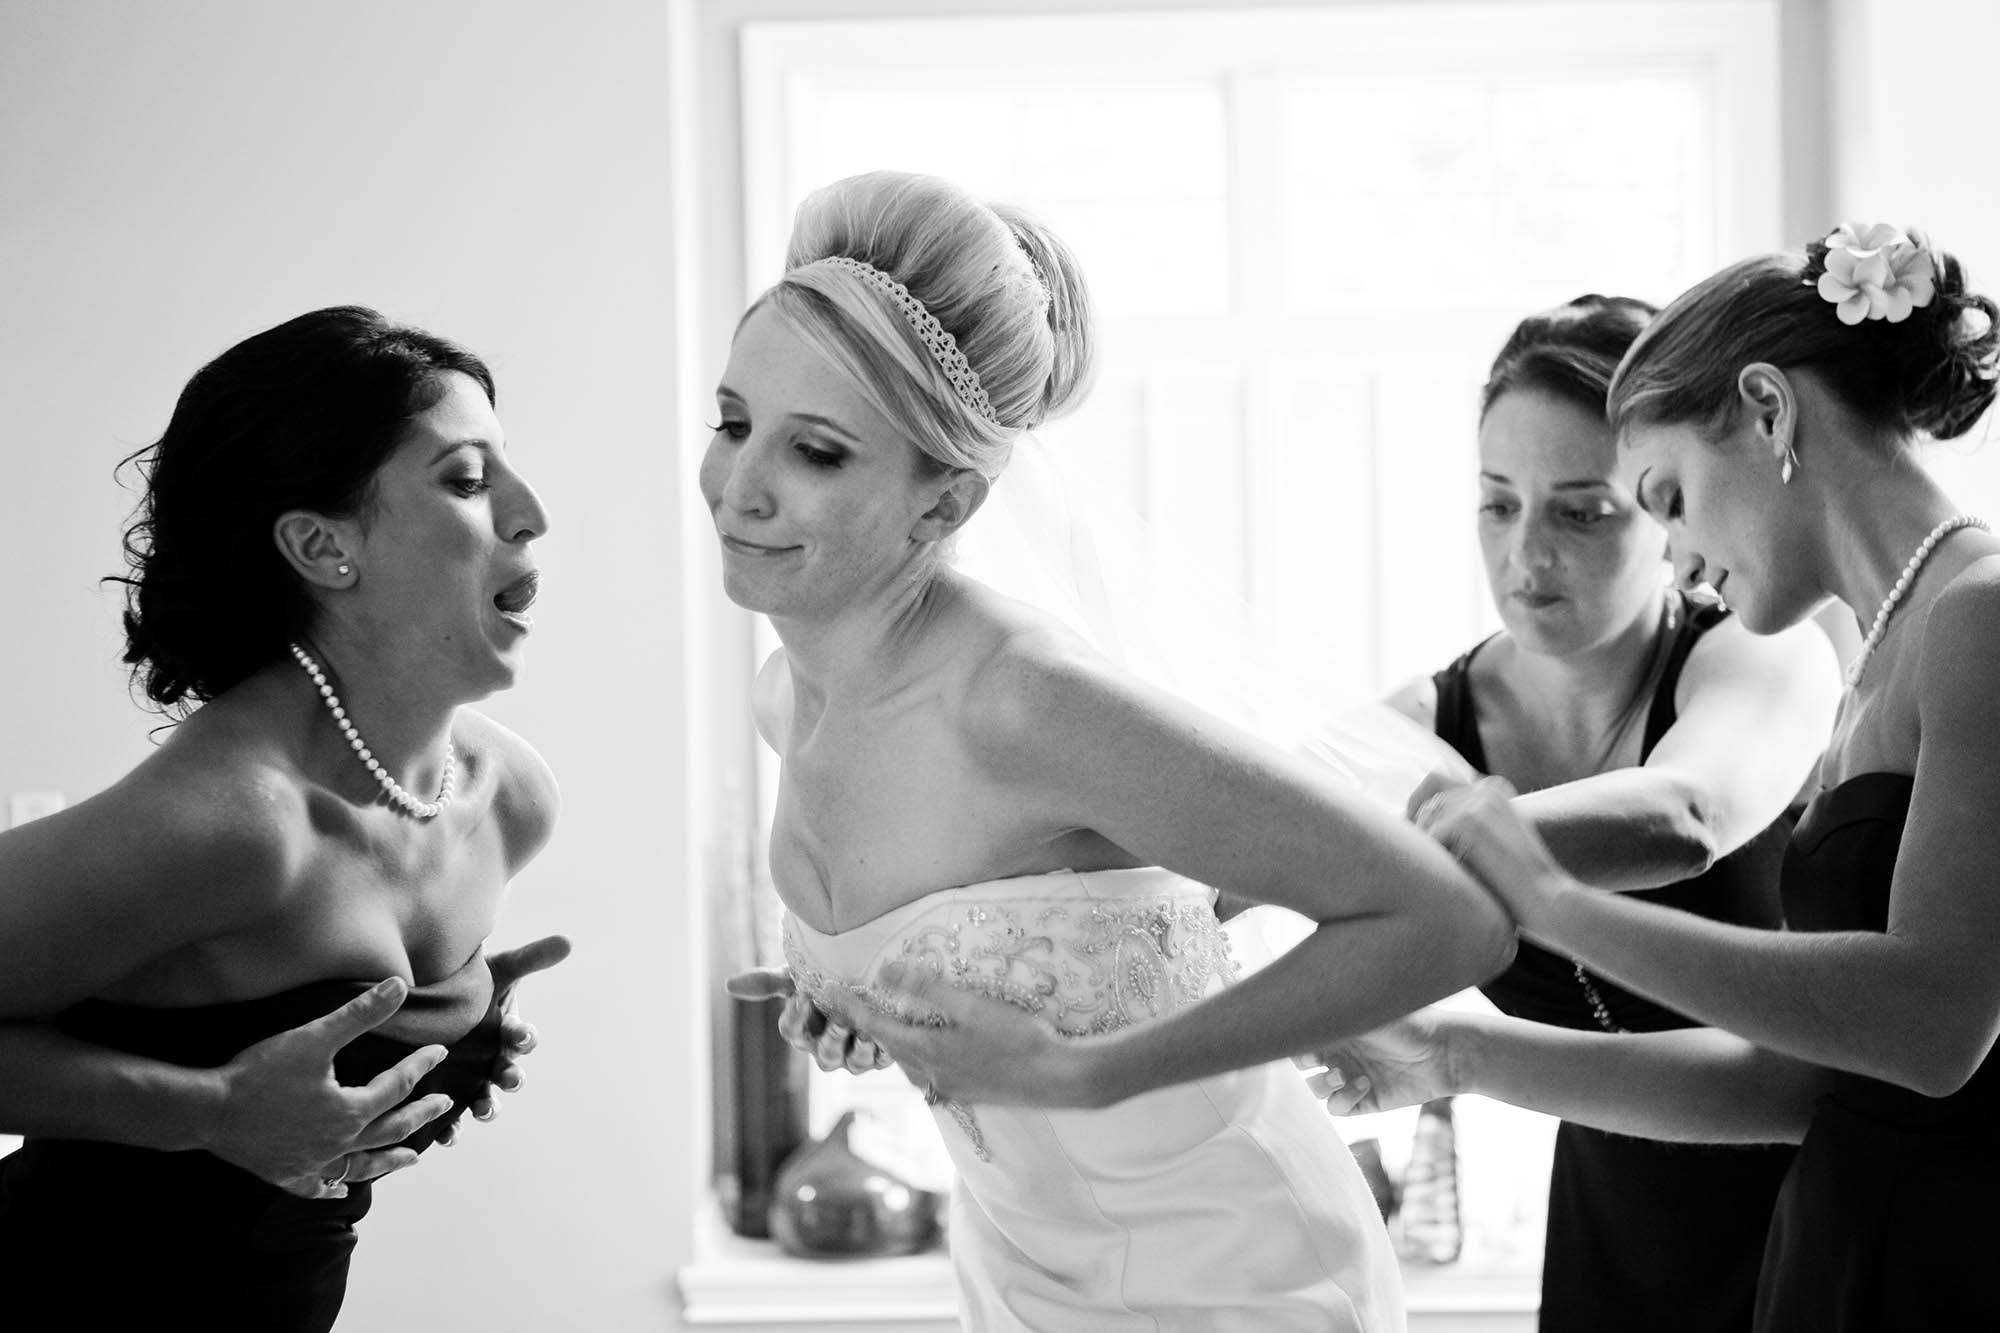 Noelle and her bridesmaids joke around as Noelle's dress is being laced up.